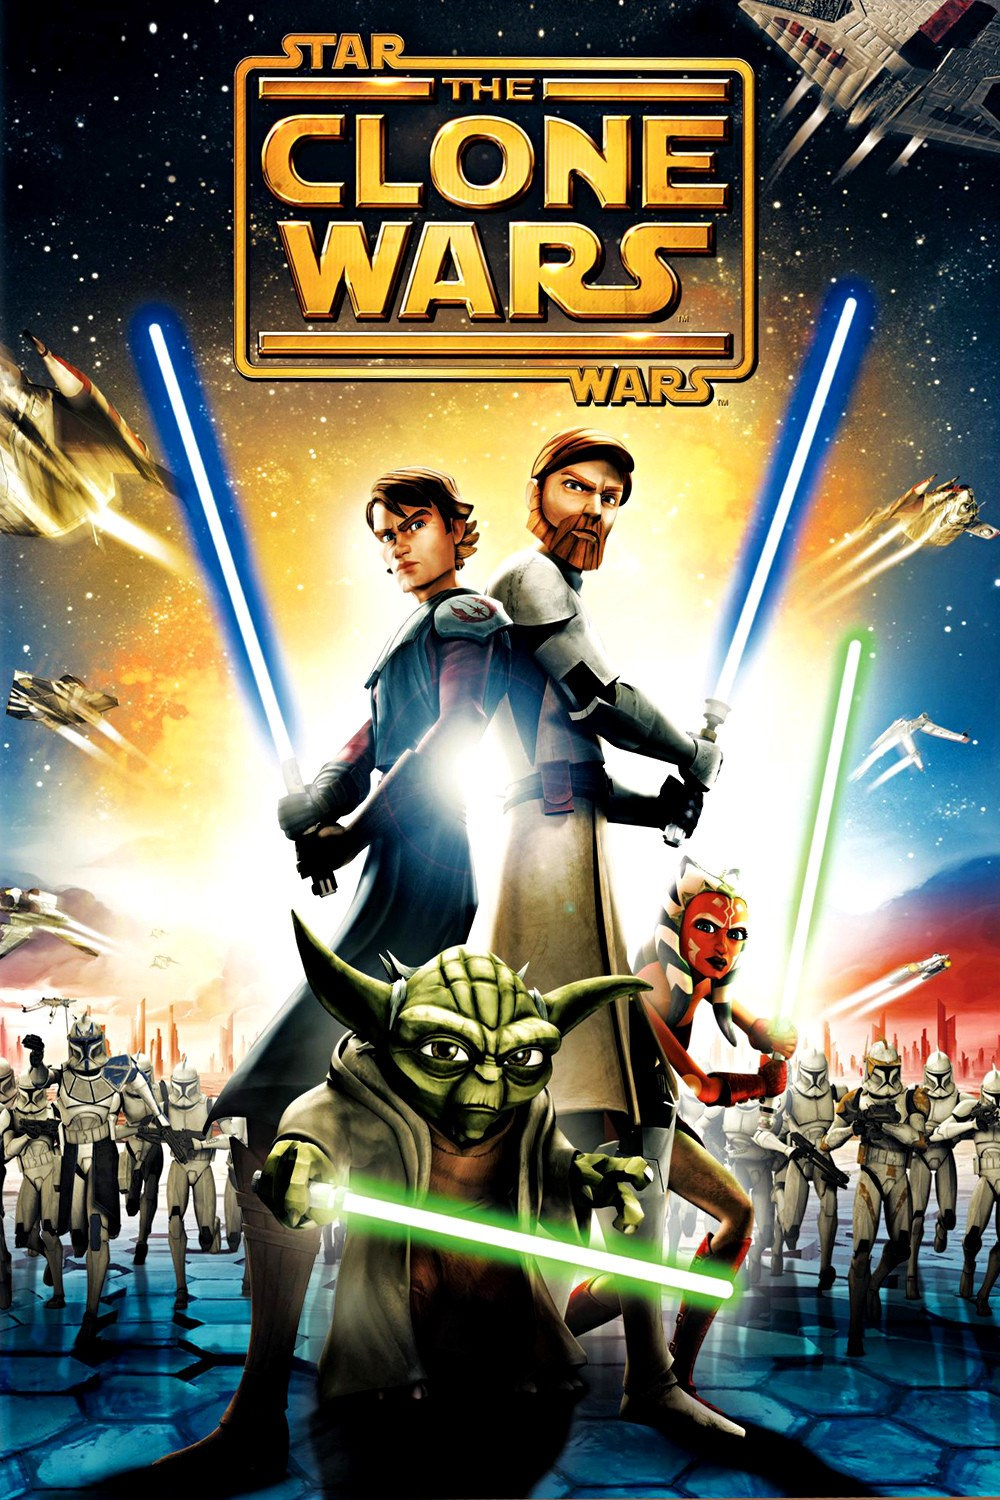 www.star wars the clone wars